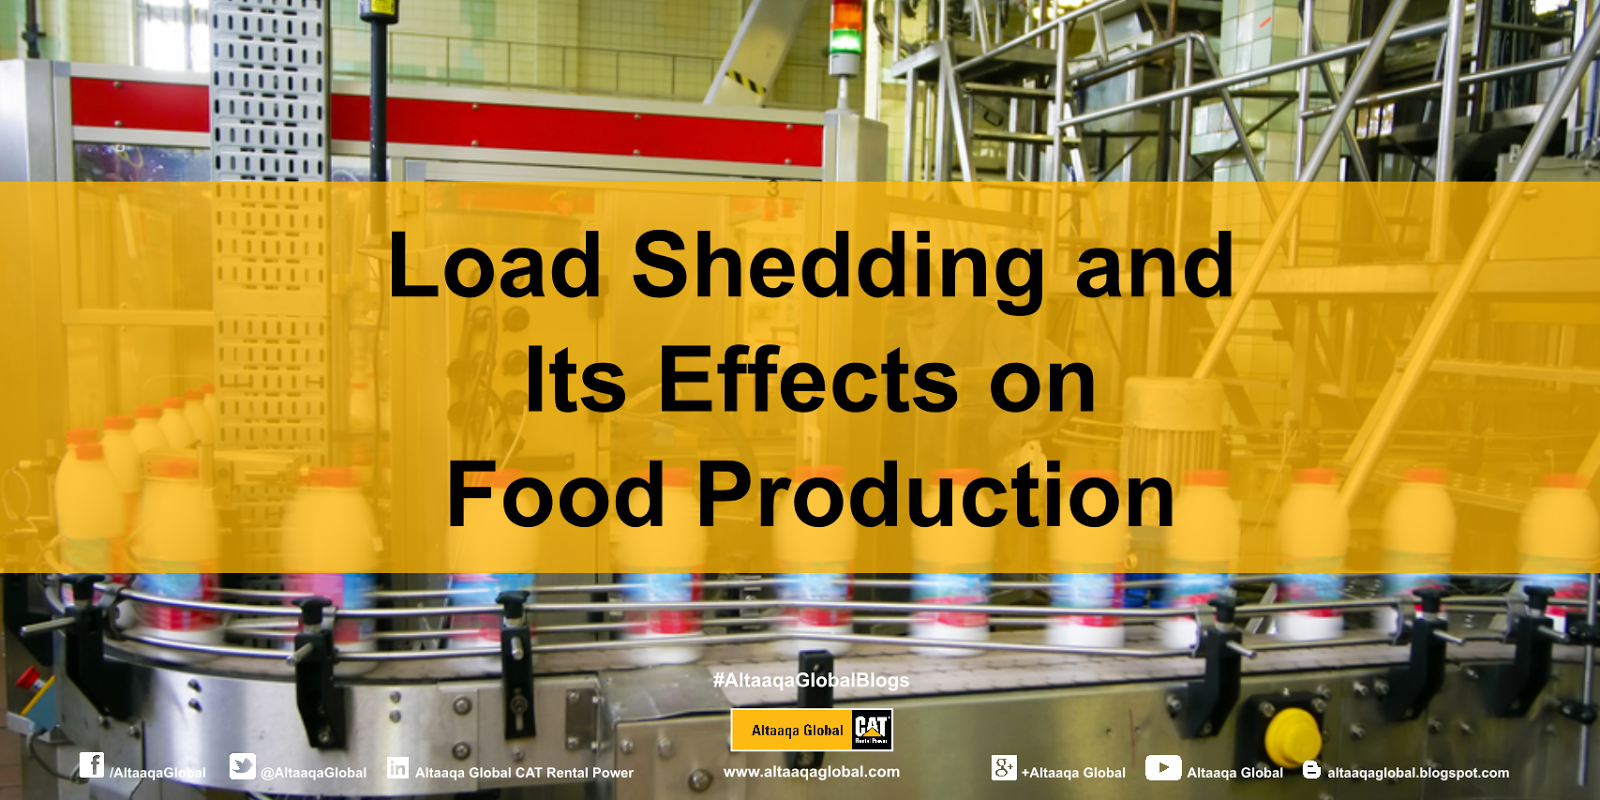 Load Shedding: Altaaqa Global: Load Shedding Throws Food Production Into